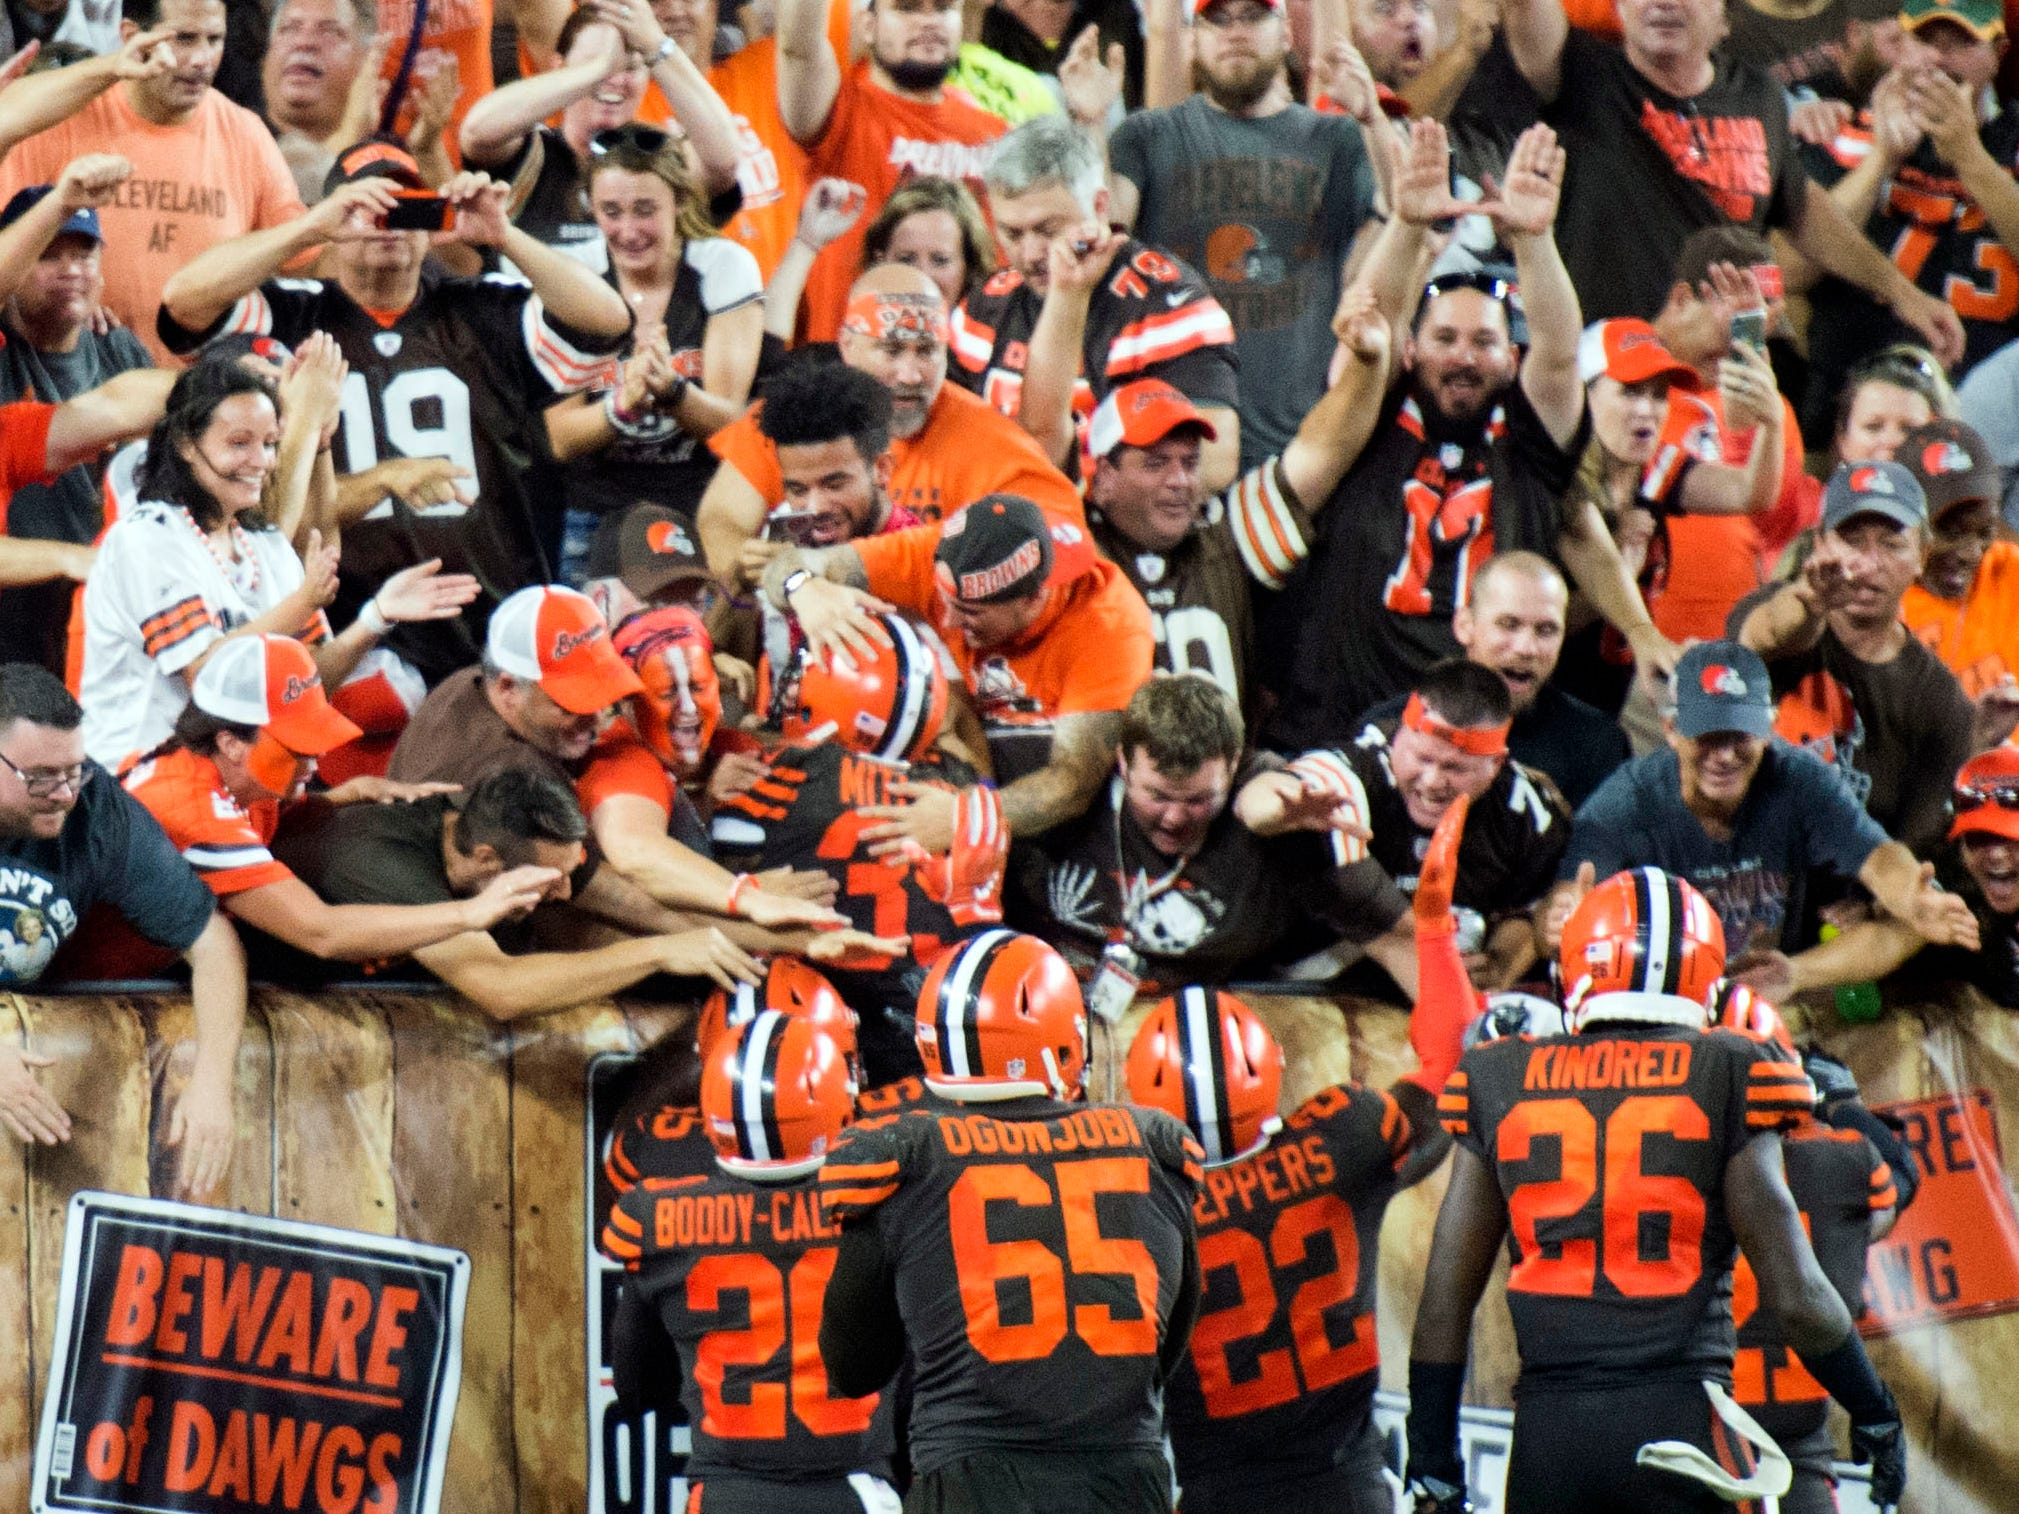 Members of the Cleveland Browns celebrate with fans after they beat the against the New York Jets at FirstEnergy Stadium.